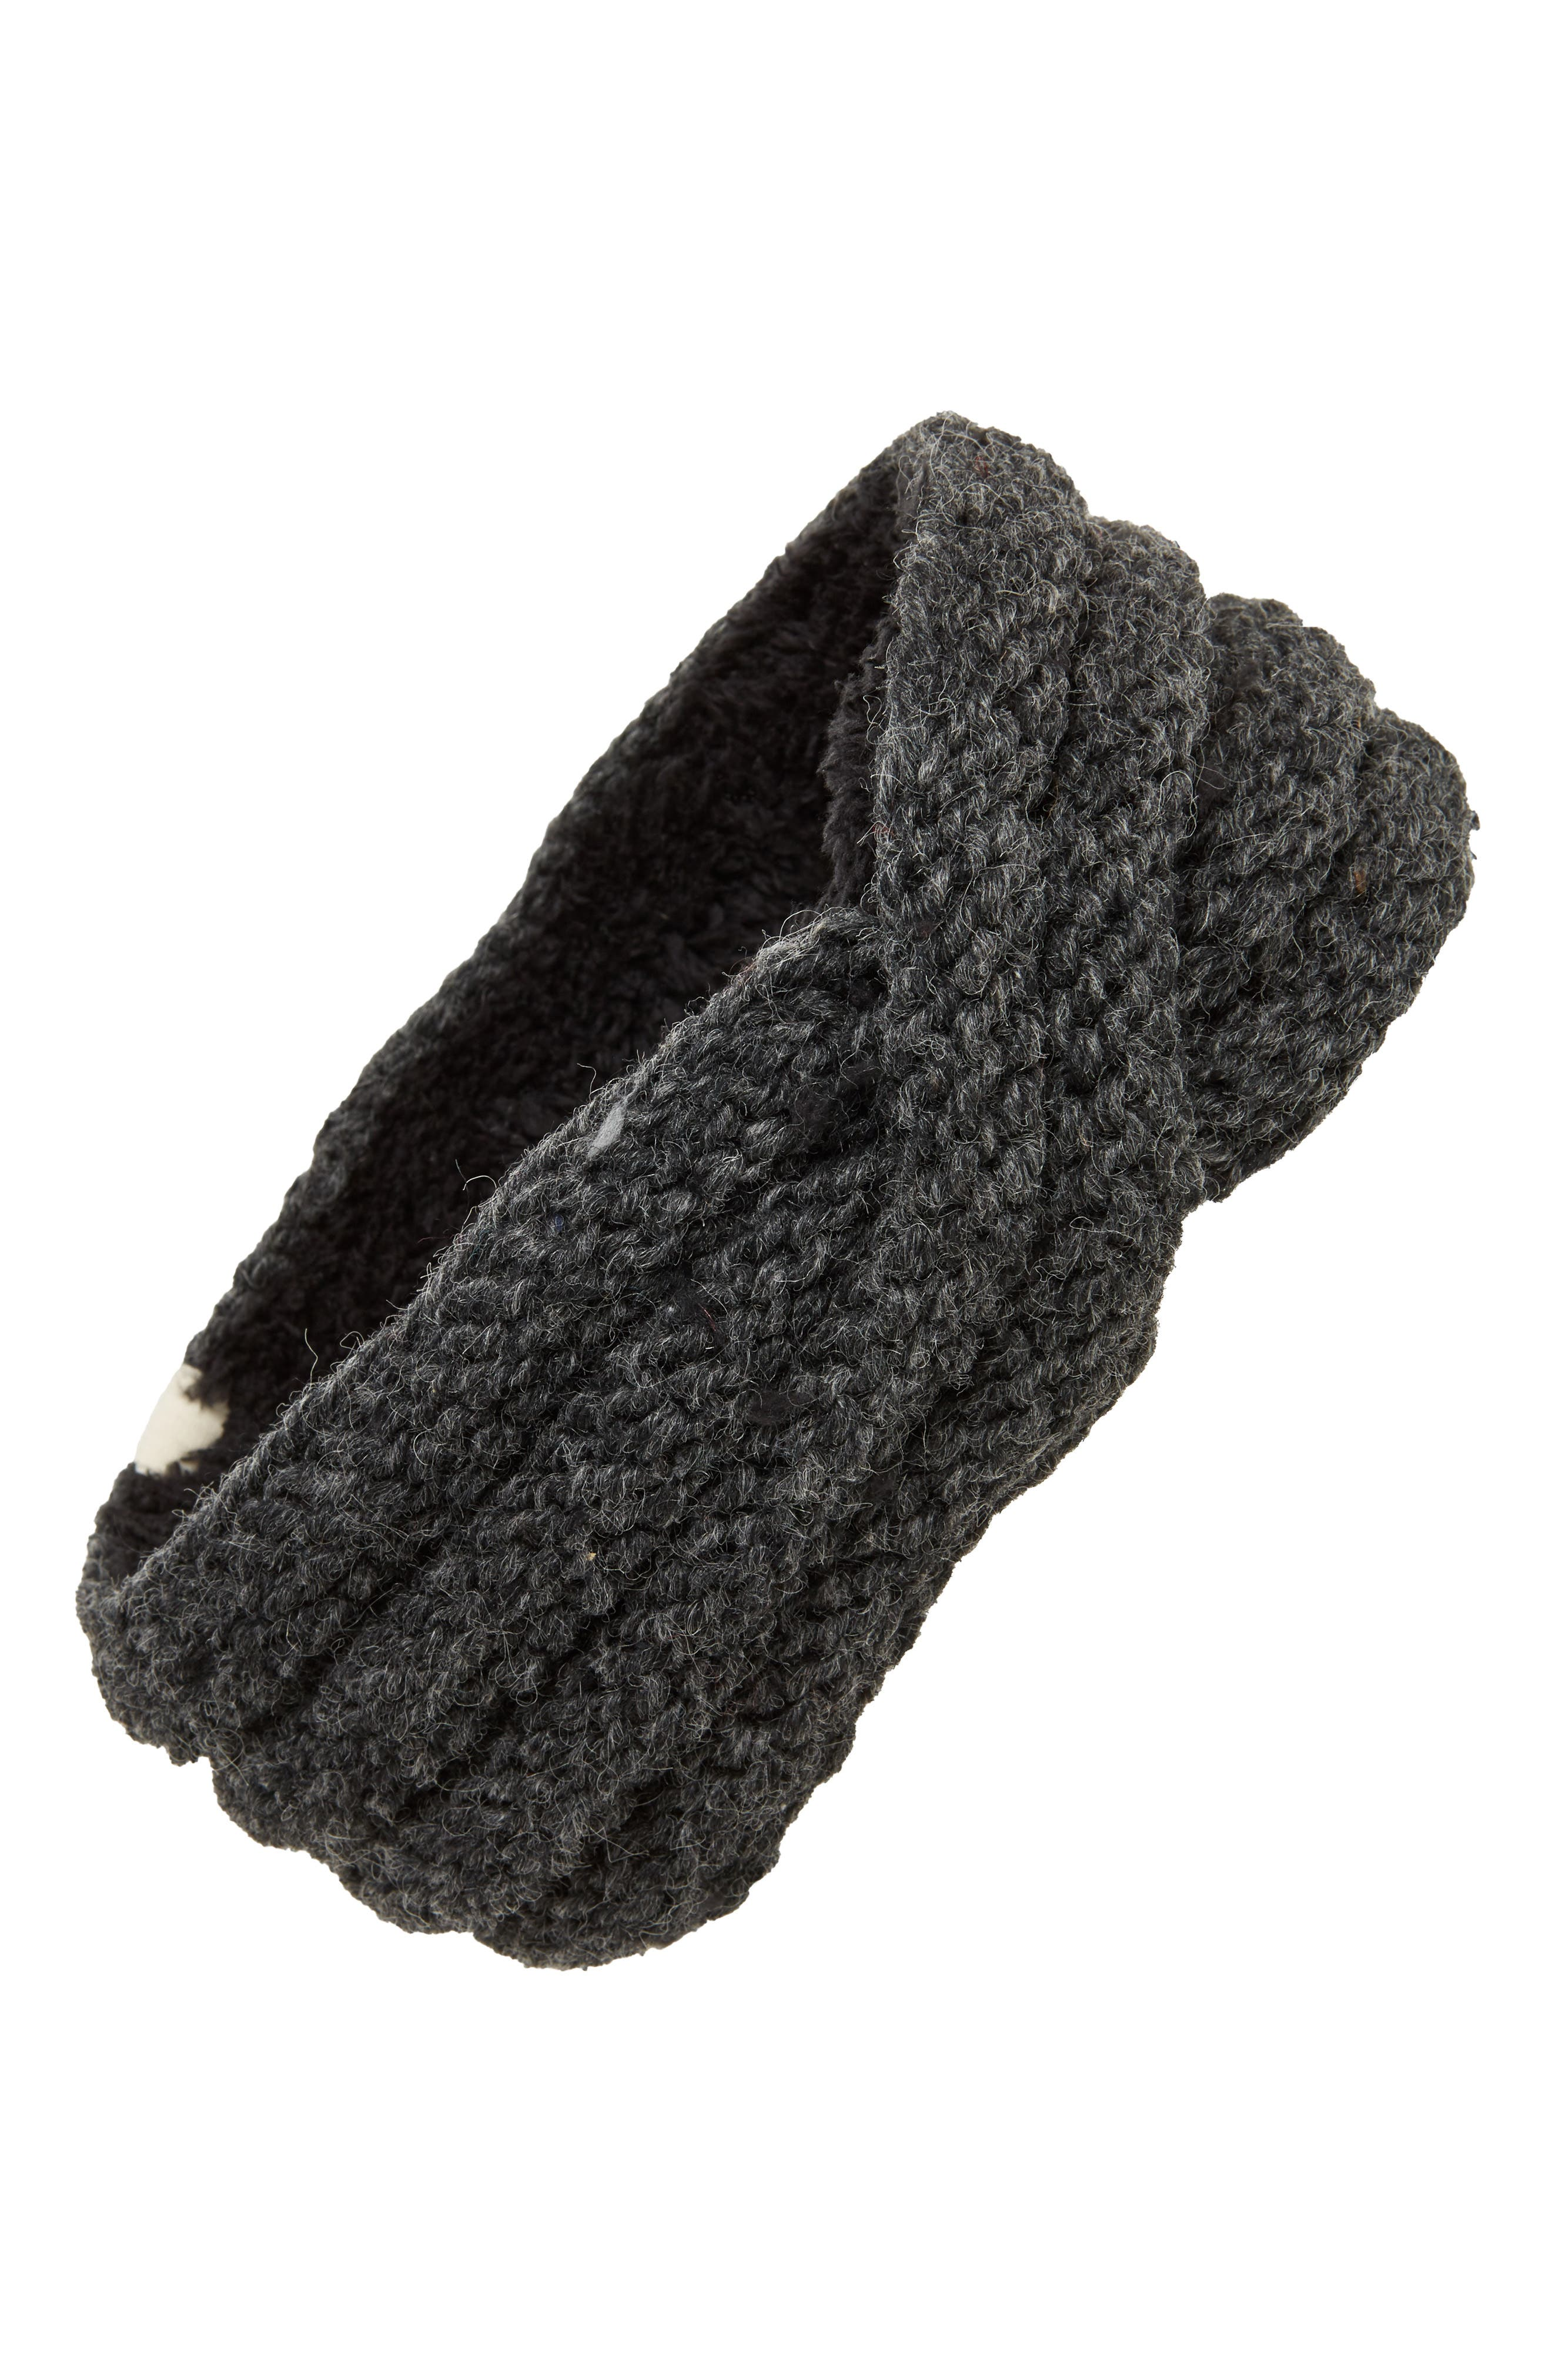 Alternate Image 1 Selected - Nirvanna Designs Veronica Cabled Wool Headband